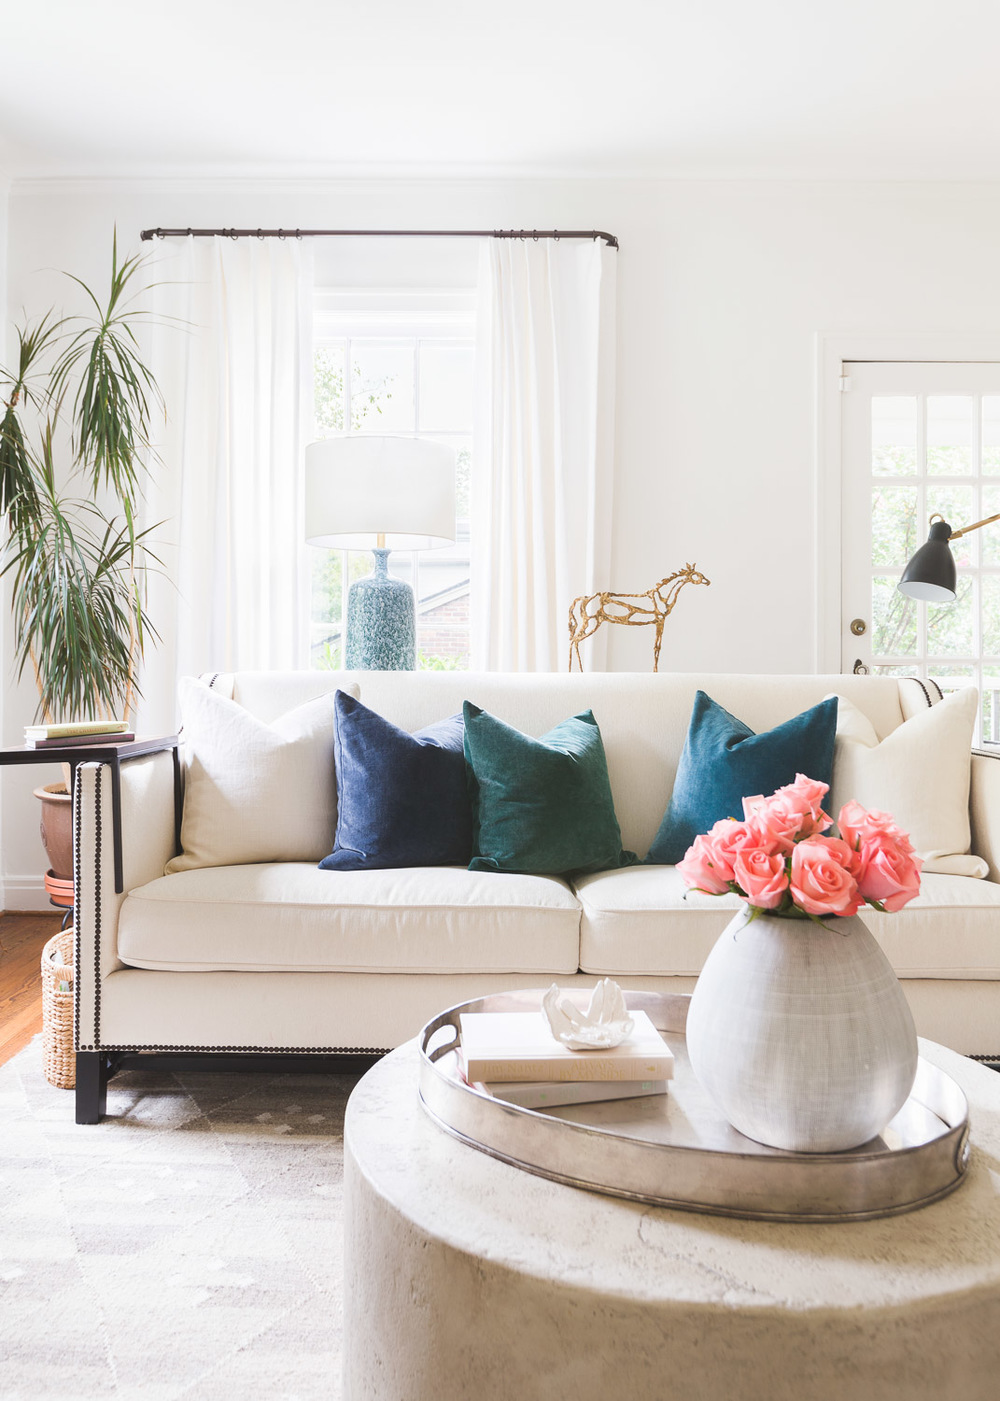 ©AlyssaRosenheck2015 with Julie Couch Interiors